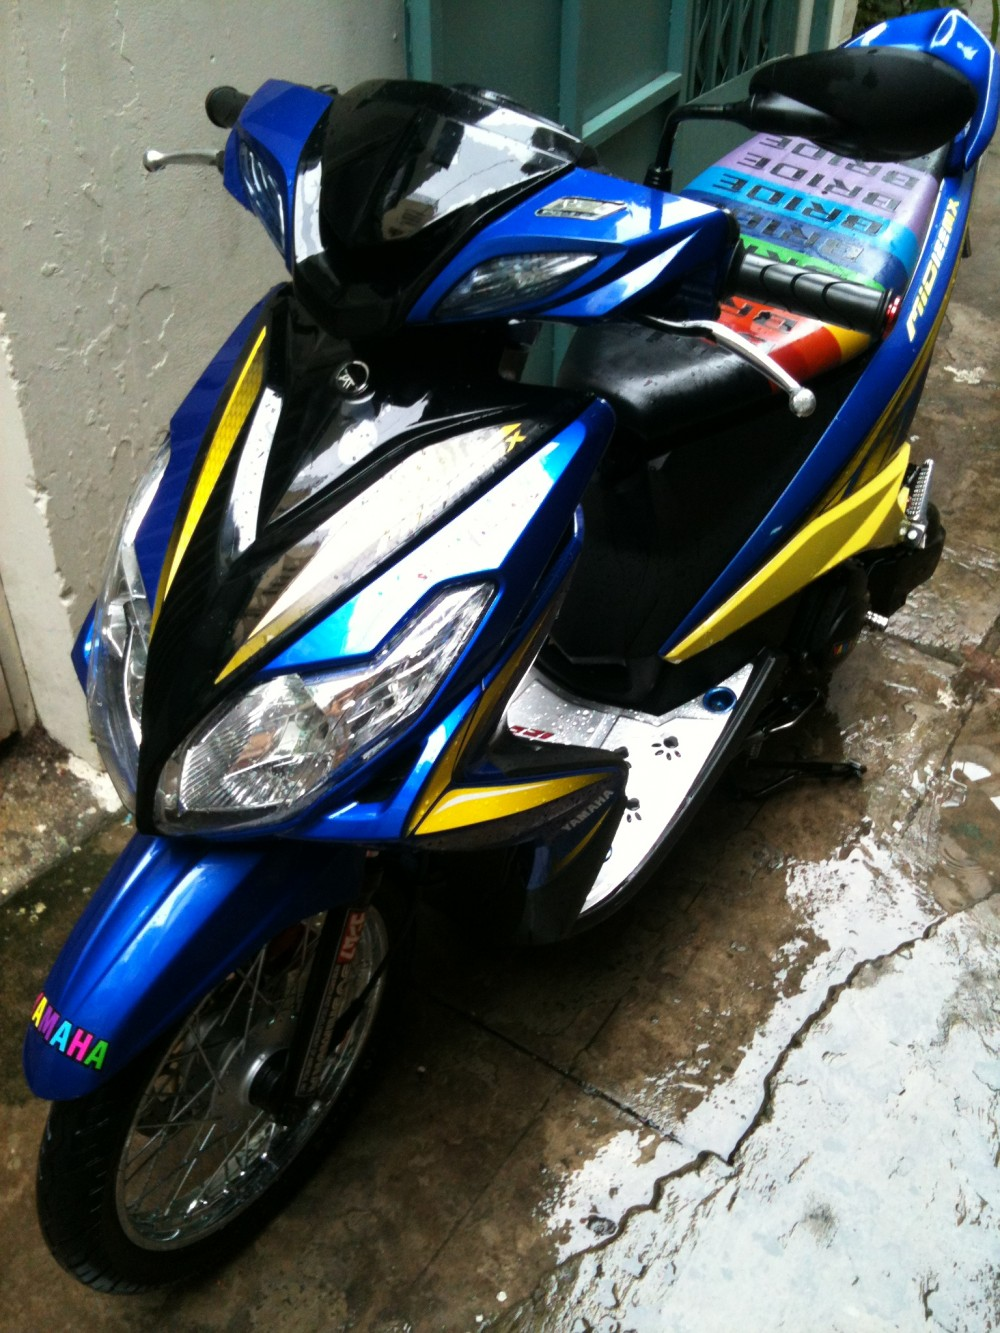 Mio 125i style drag Thai nhe nhang ma chat - 5